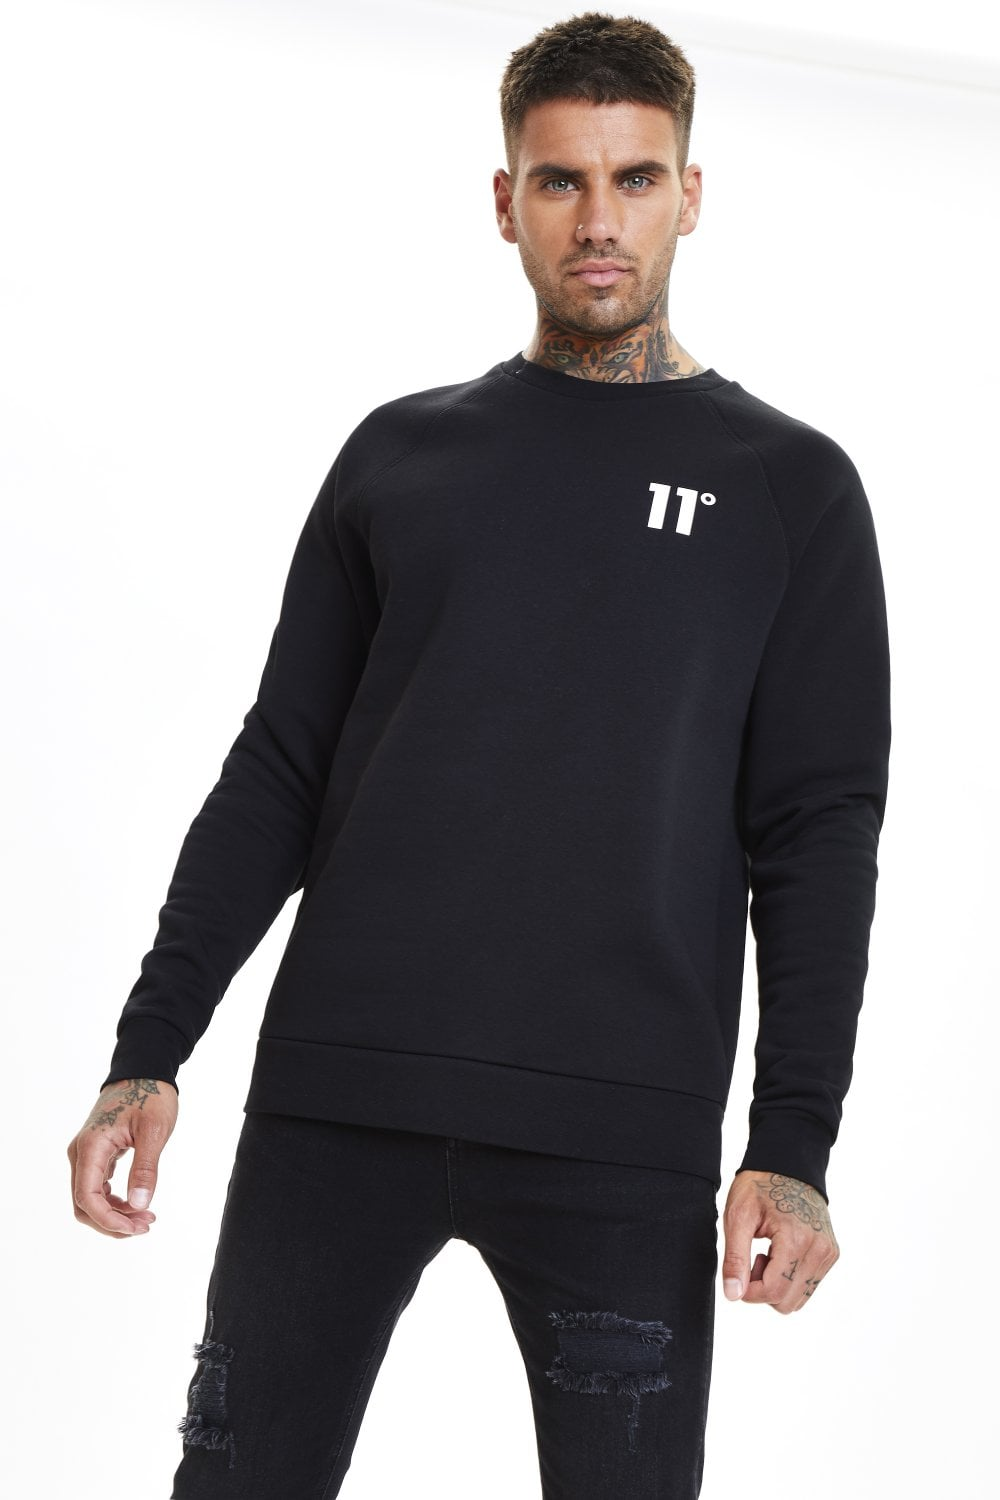 11 Degrees Core Sweatshirt - Black